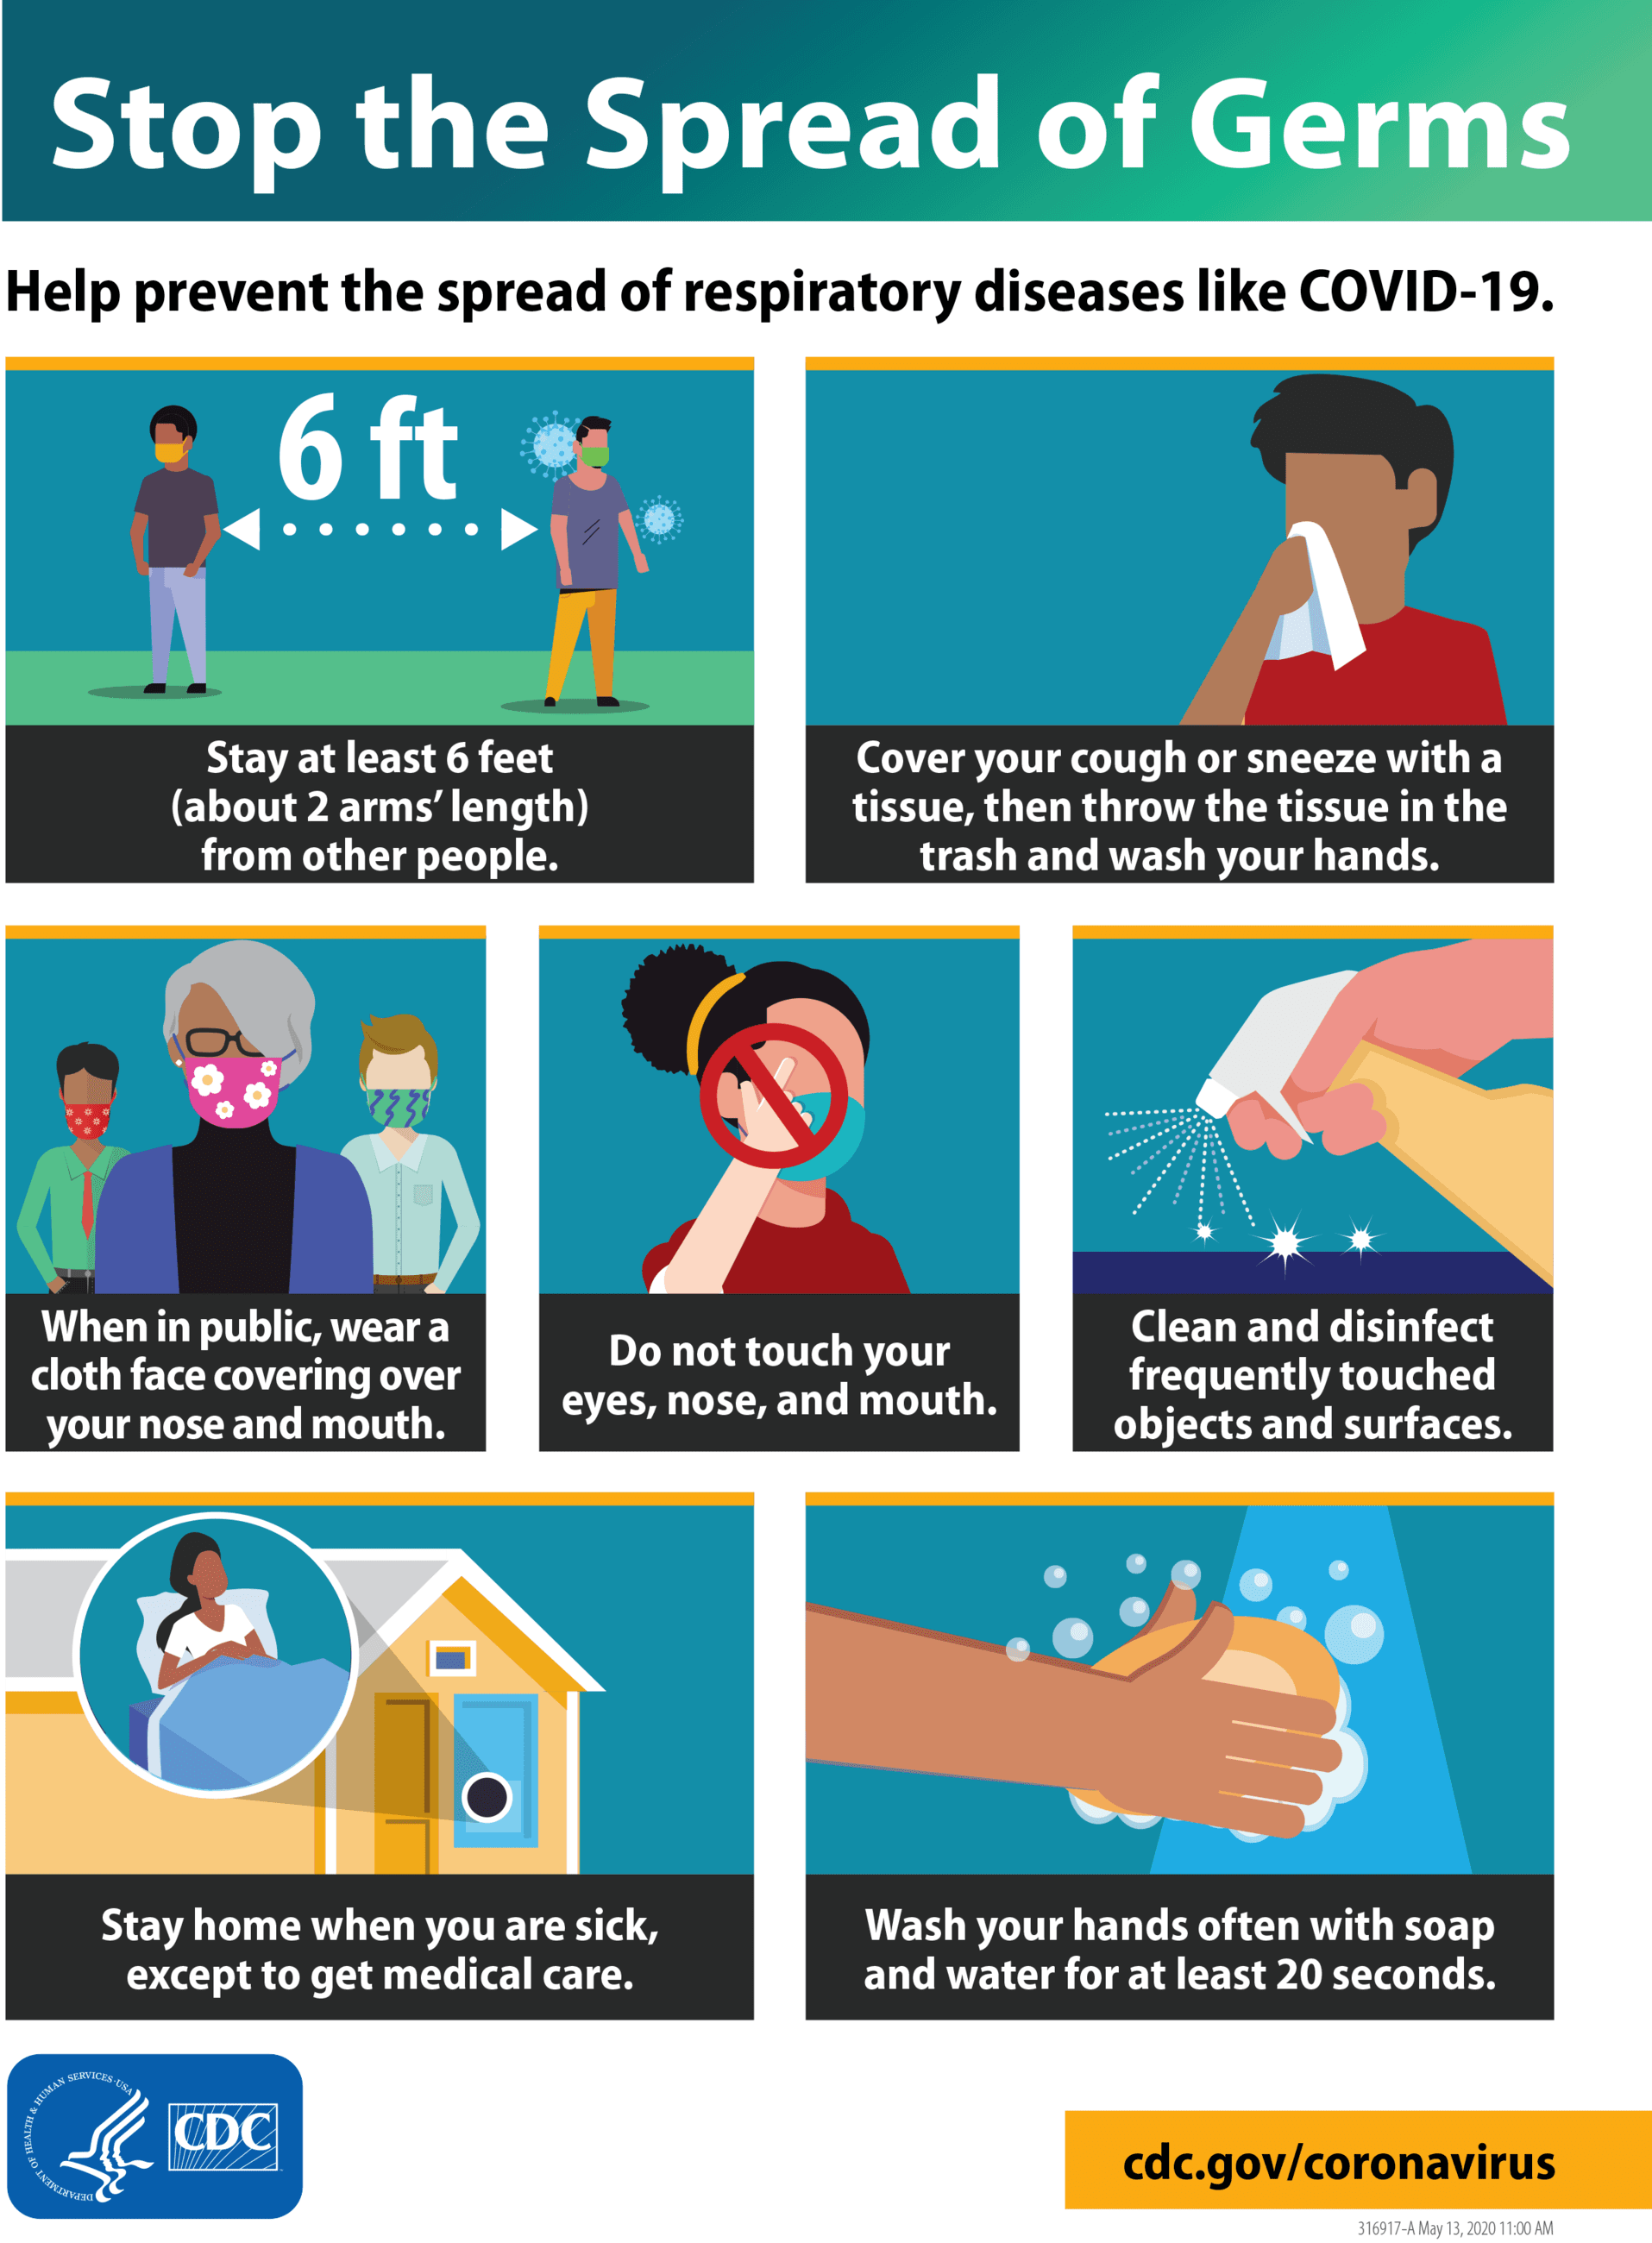 CDC Poster about stopping the spread of germs Opens in new window